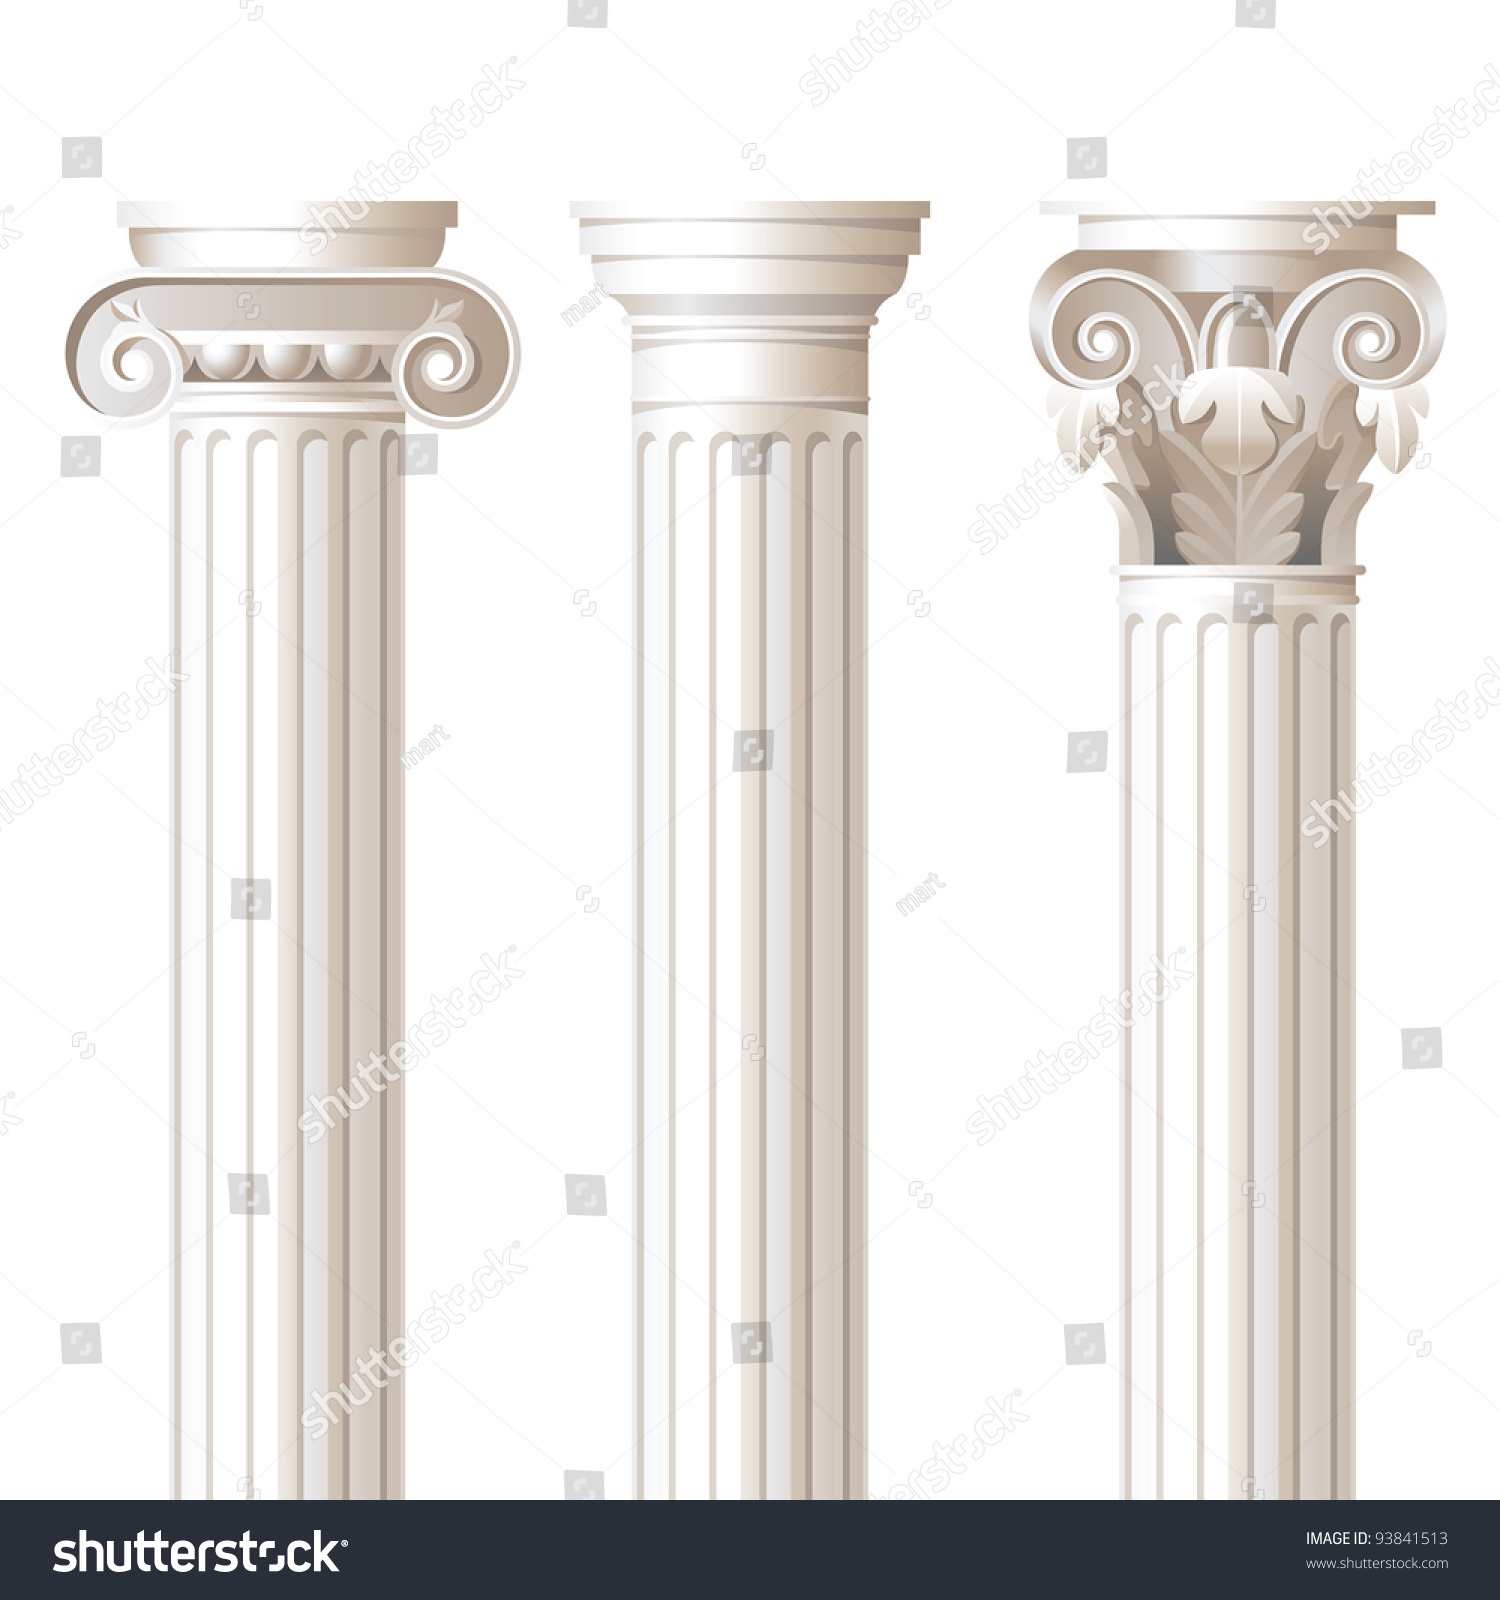 3 columns different styles ionic doric stock vector for Different architectural designs